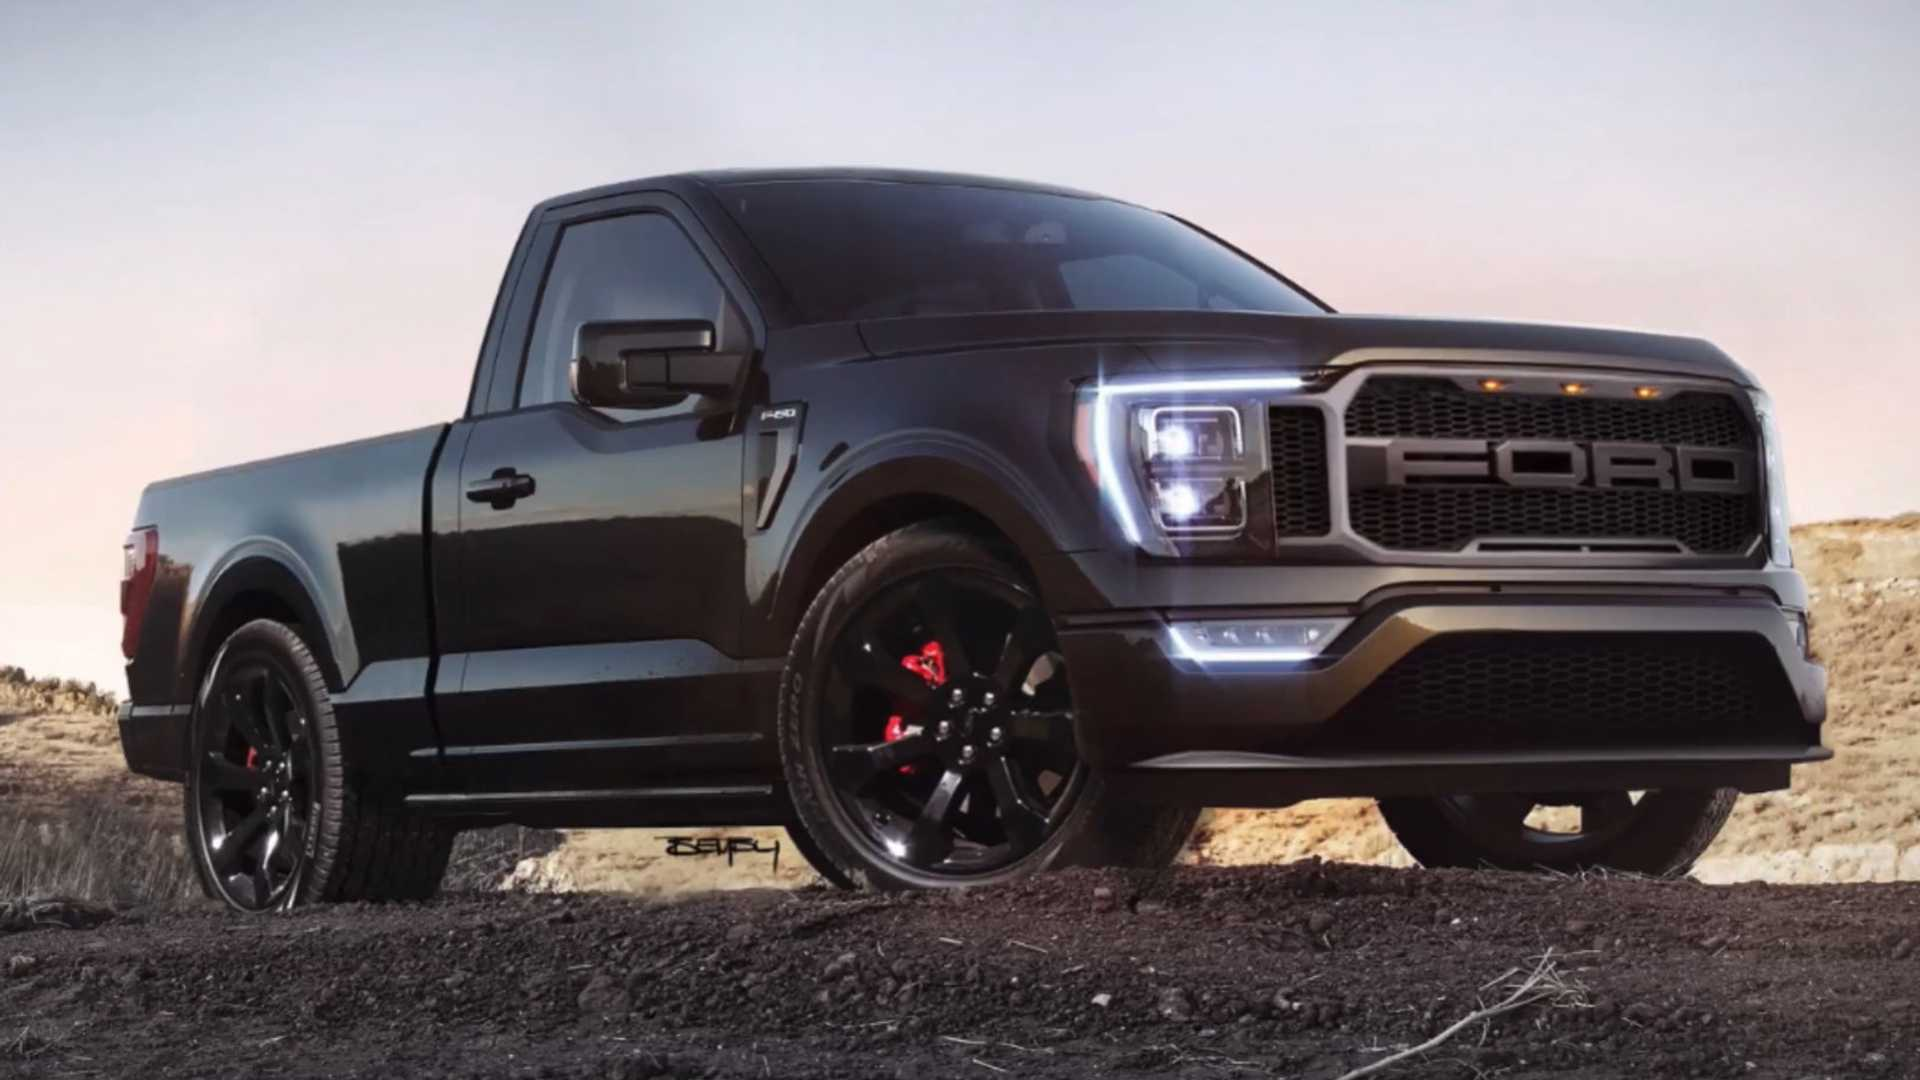 2021 Ford F150 Svt Raptor Price and Review